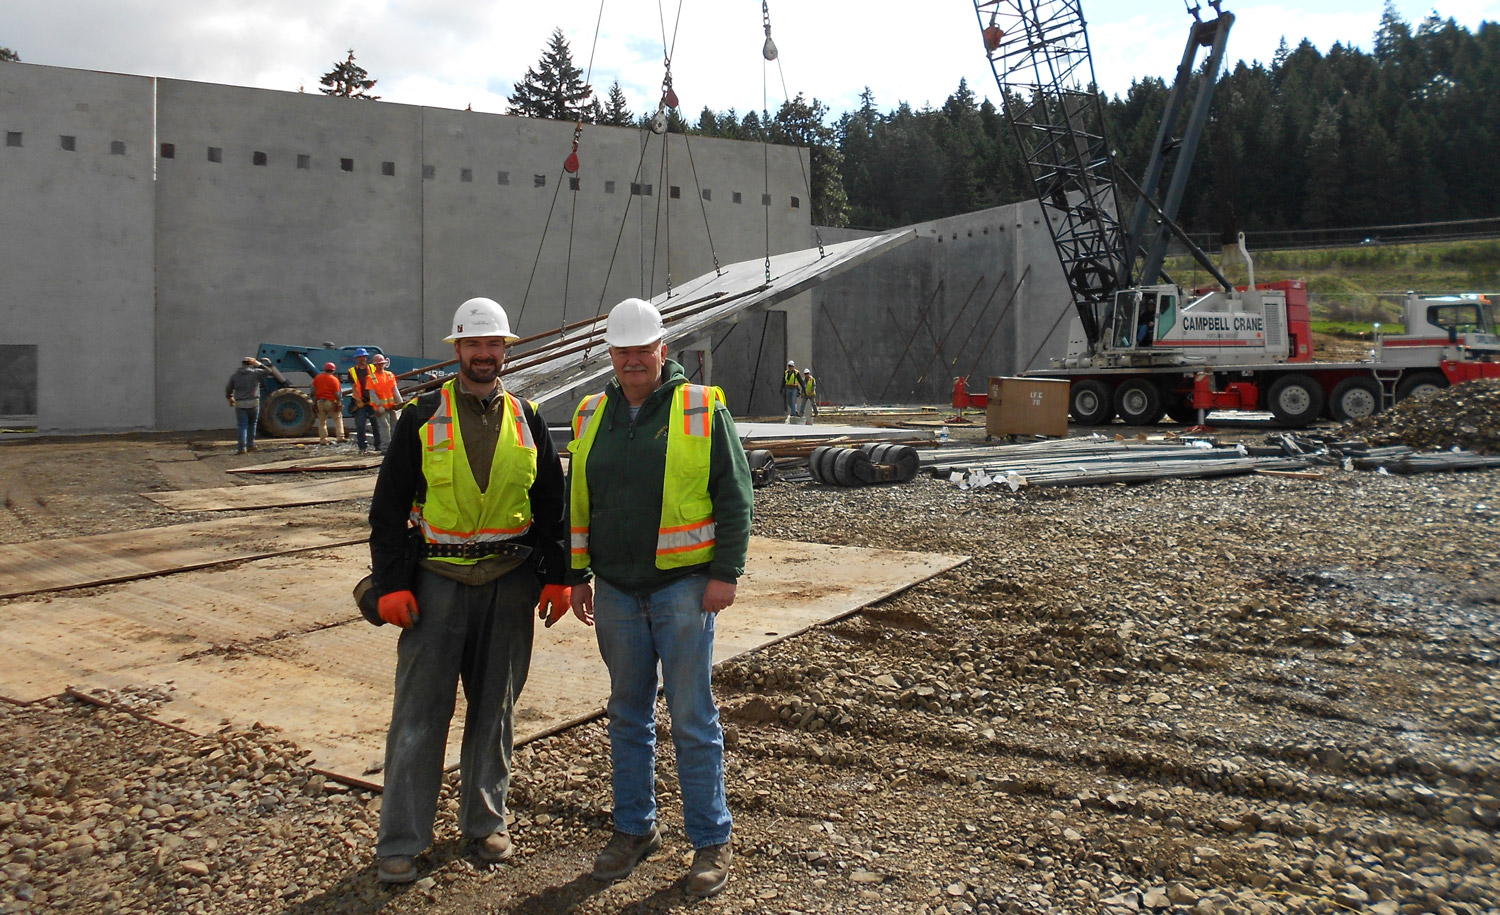 Sam and Samuel Griffin of Griffin Construction, a family owned construction company near Bend, Oregon